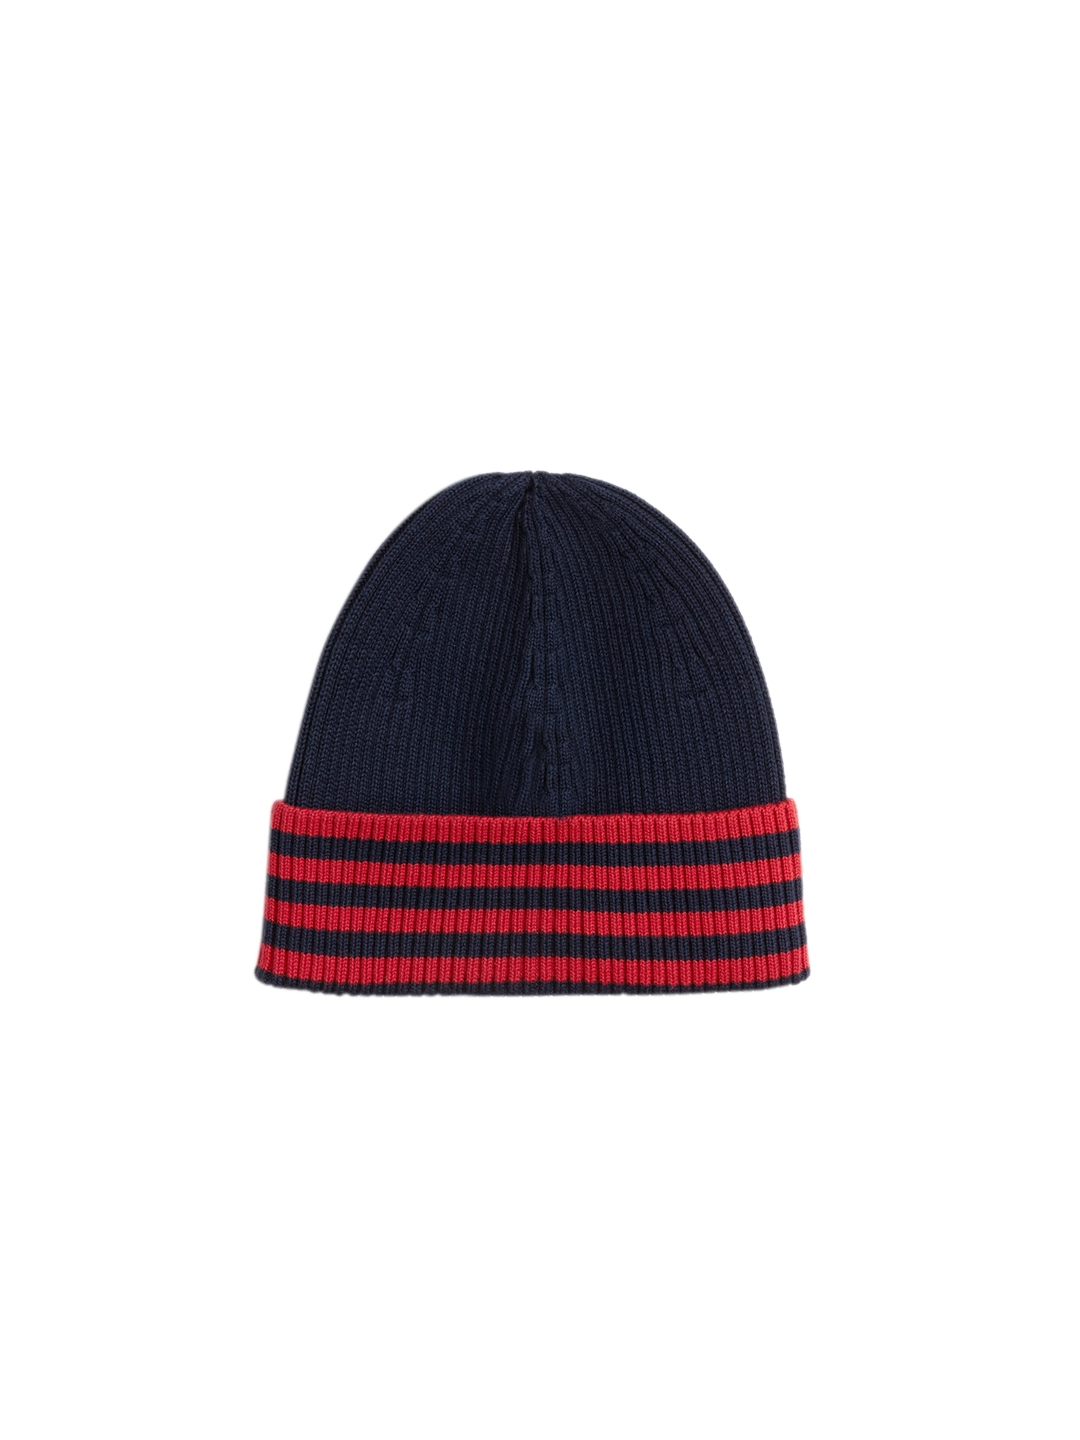 1035a57c6c5 Buy Lacoste Men Navy Blue   Red Striped Beanie - Caps for Men ...